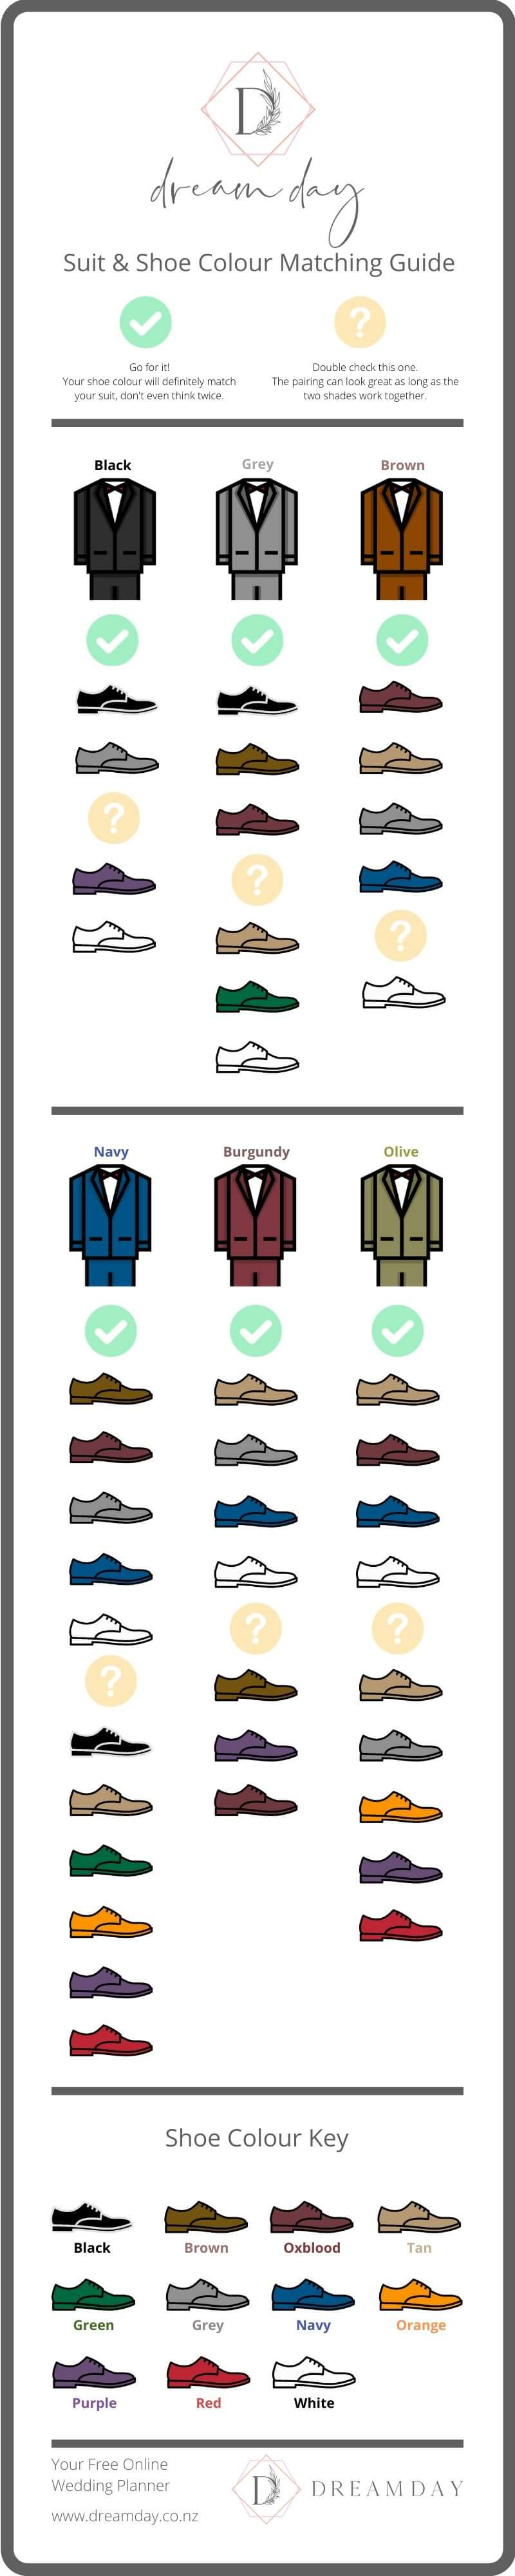 Infographic Depicting the Correct Colour Shoes To Match With Certain Coloured Suits